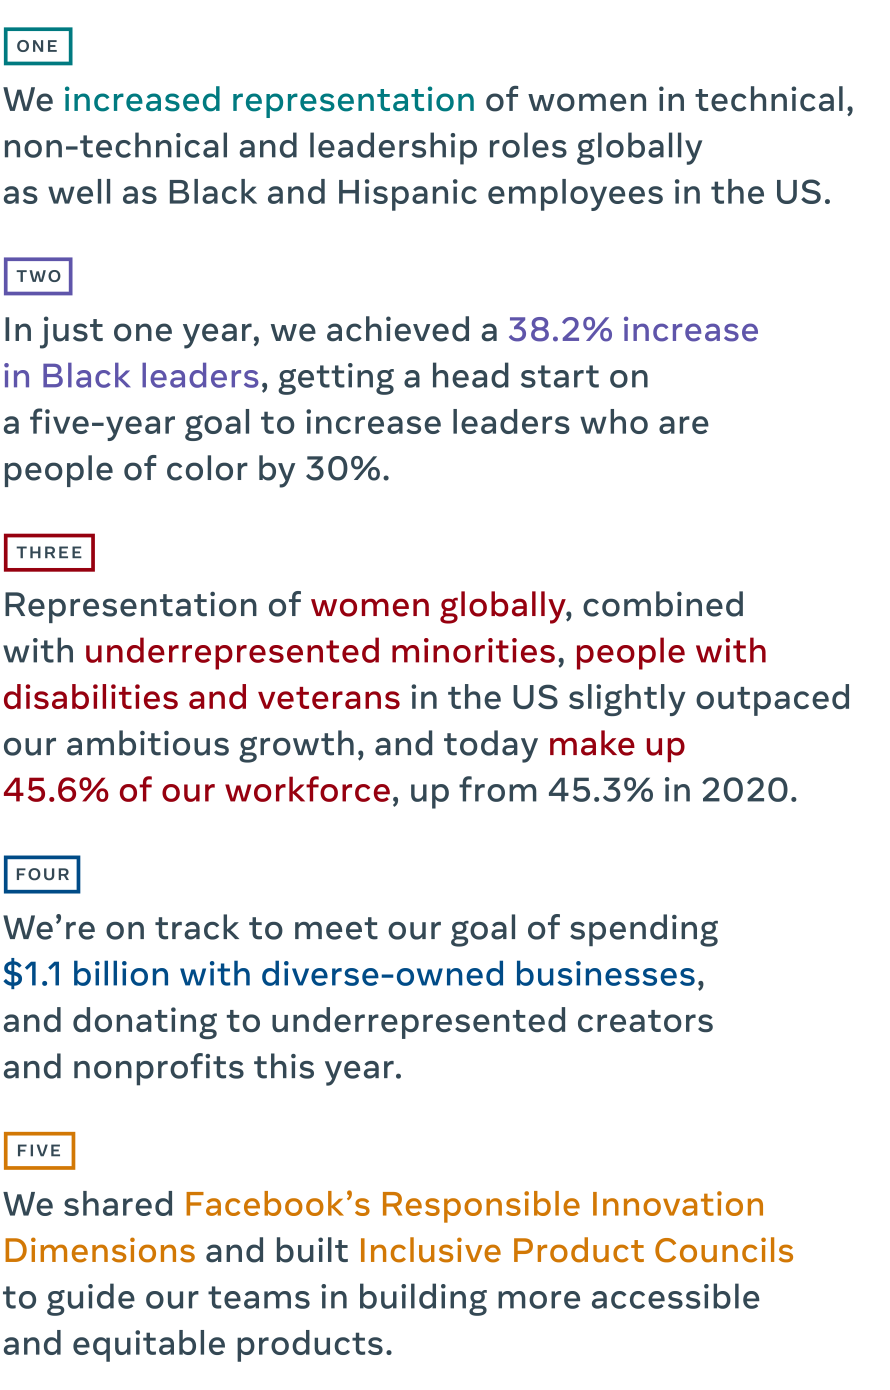 1) We increased representation of women in technical, non-technical and leadership roles globally as well as Black and Hispanic employees in the US. 2) In just one year, we achieved a 38.2% increase in Black leaders, getting a head start on a five-year goal to increase leaders who are people of color by 30%. 3) Representation of women globally, combined with underrepresented minorities, people with disabilities and veterans in the US slightly outpaced our ambitious growth, and today make up 45.6% of our workforce, up from 45.3% in 2020. 4) We're on track to meet our goal of spending $1.1 billion with diverse-owned businesses, and donating to underrepresented creators and nonprofits this year. 5) We shared Facebook's Responsible Innovation Dimensions and built Inclusive Product Councils to guide our teams in building more accessible and equitable products.